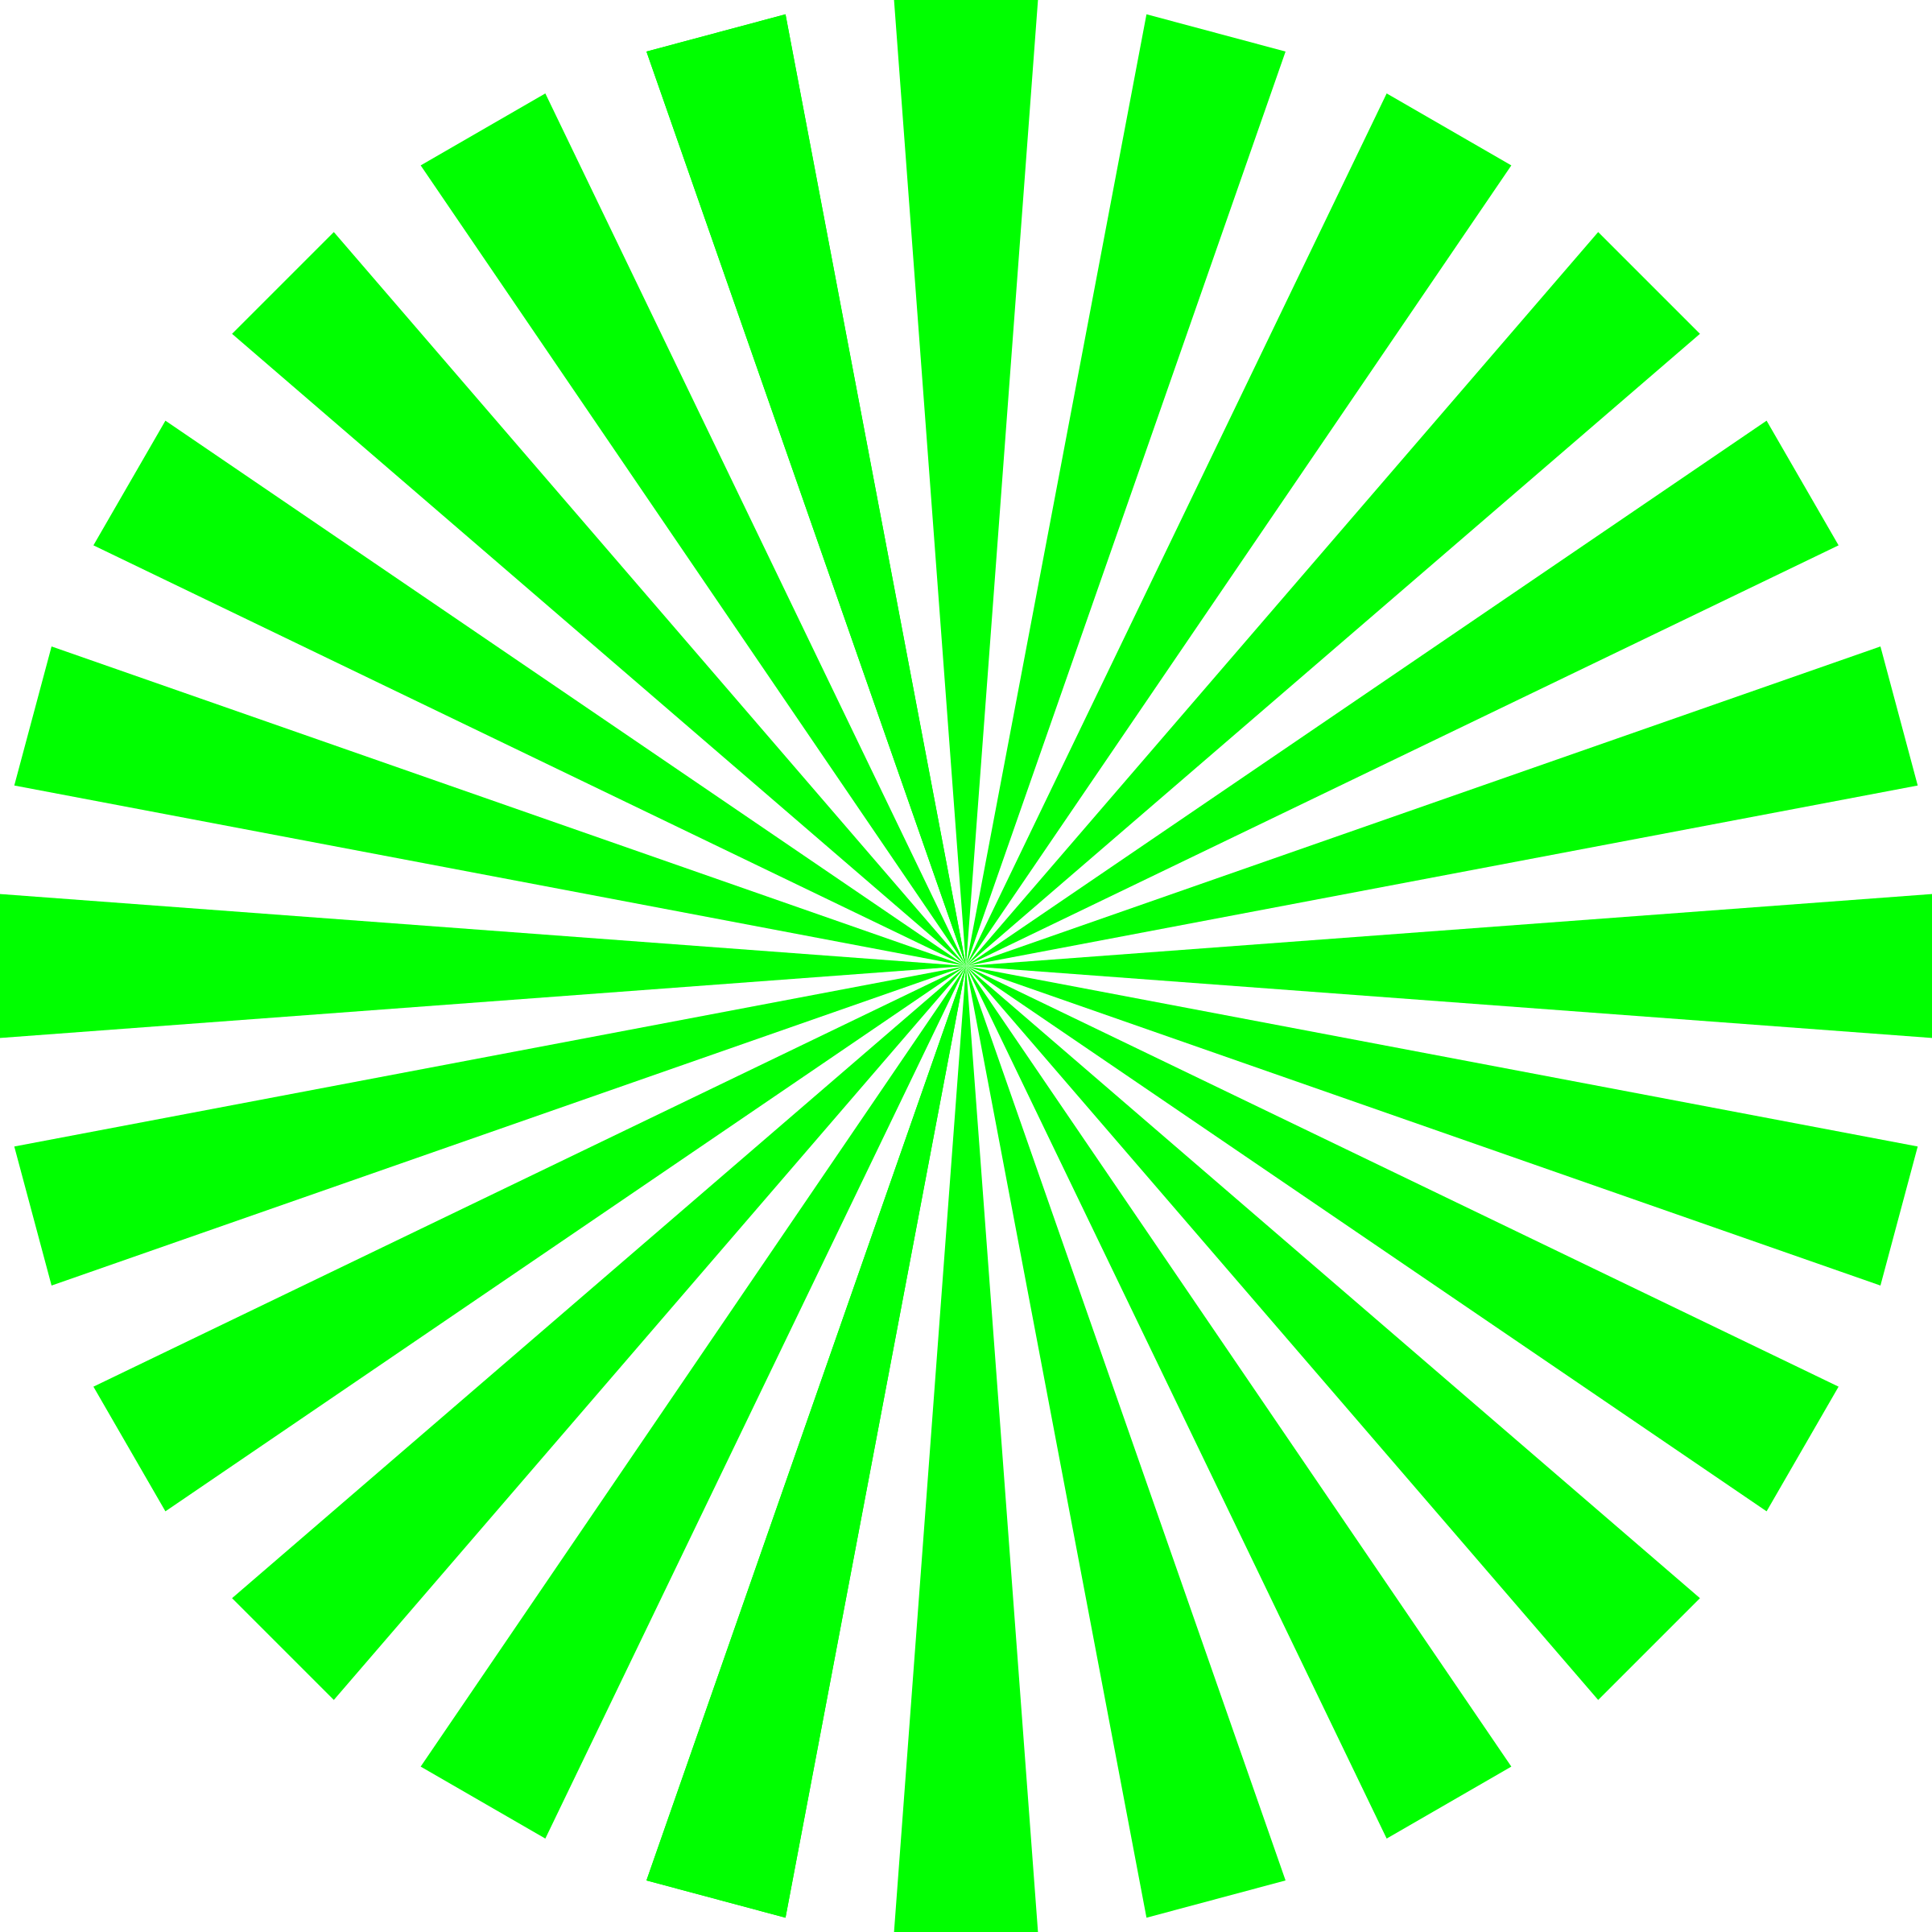 Basic Green Star Burst by CCX